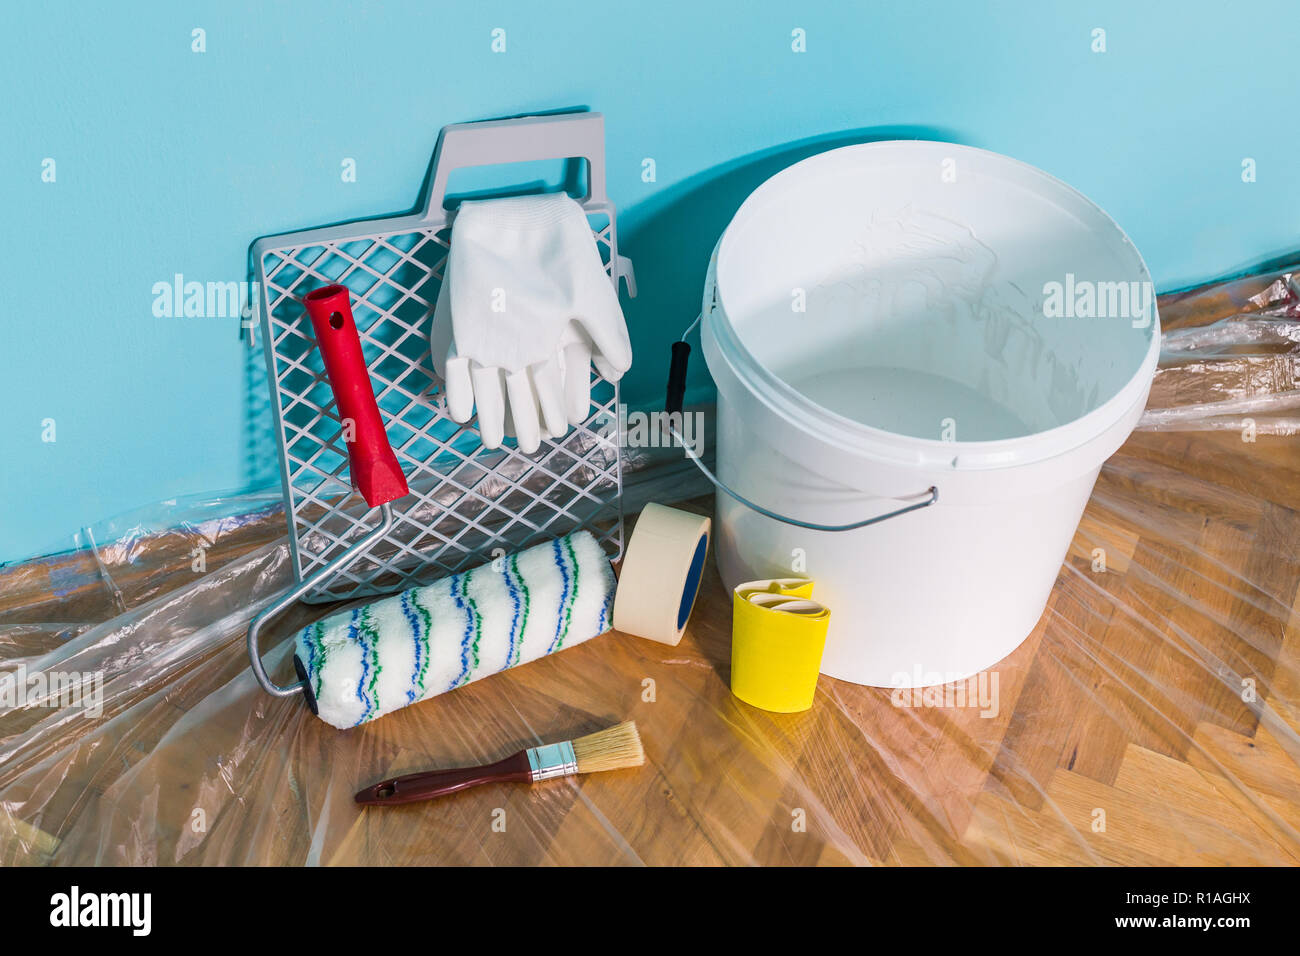 Image Of Equipment For Painting Wall Stock Photo 224582006 Alamy